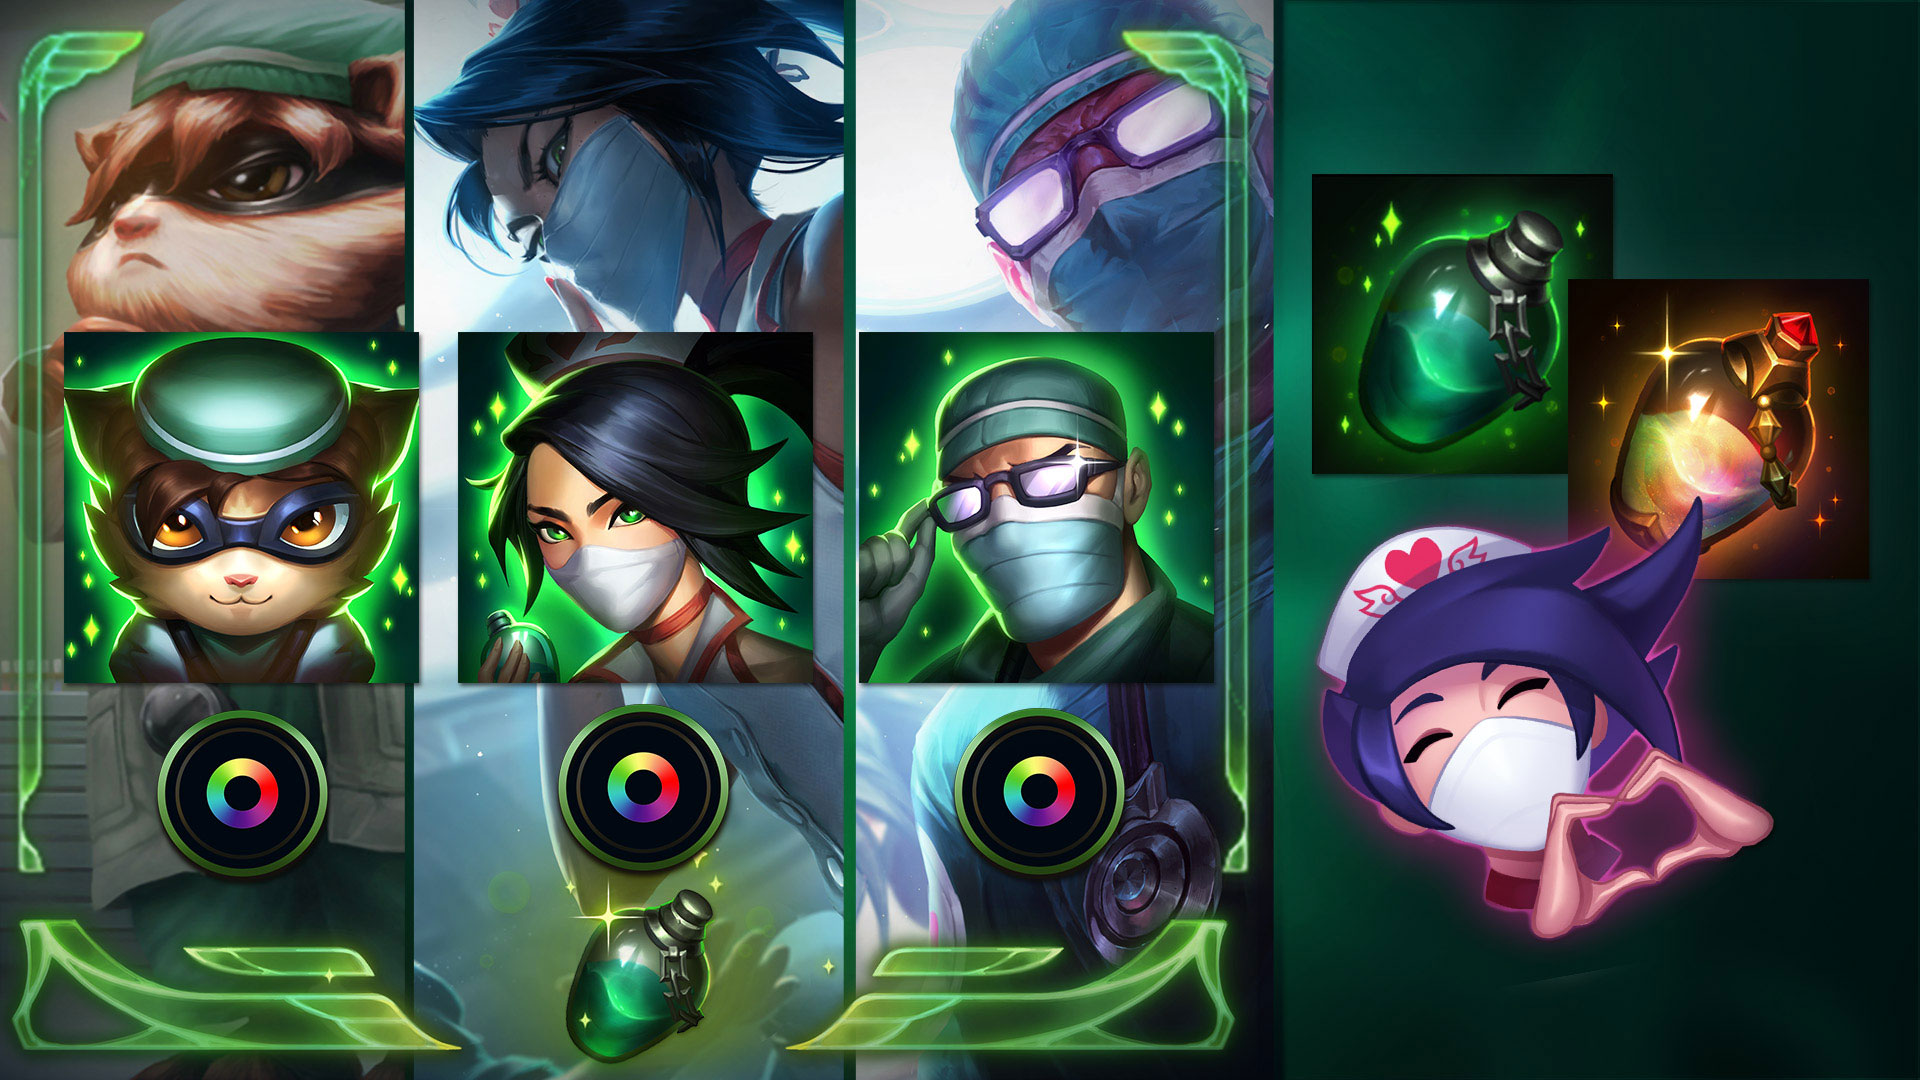 Covid-19 Relief by League of Legends